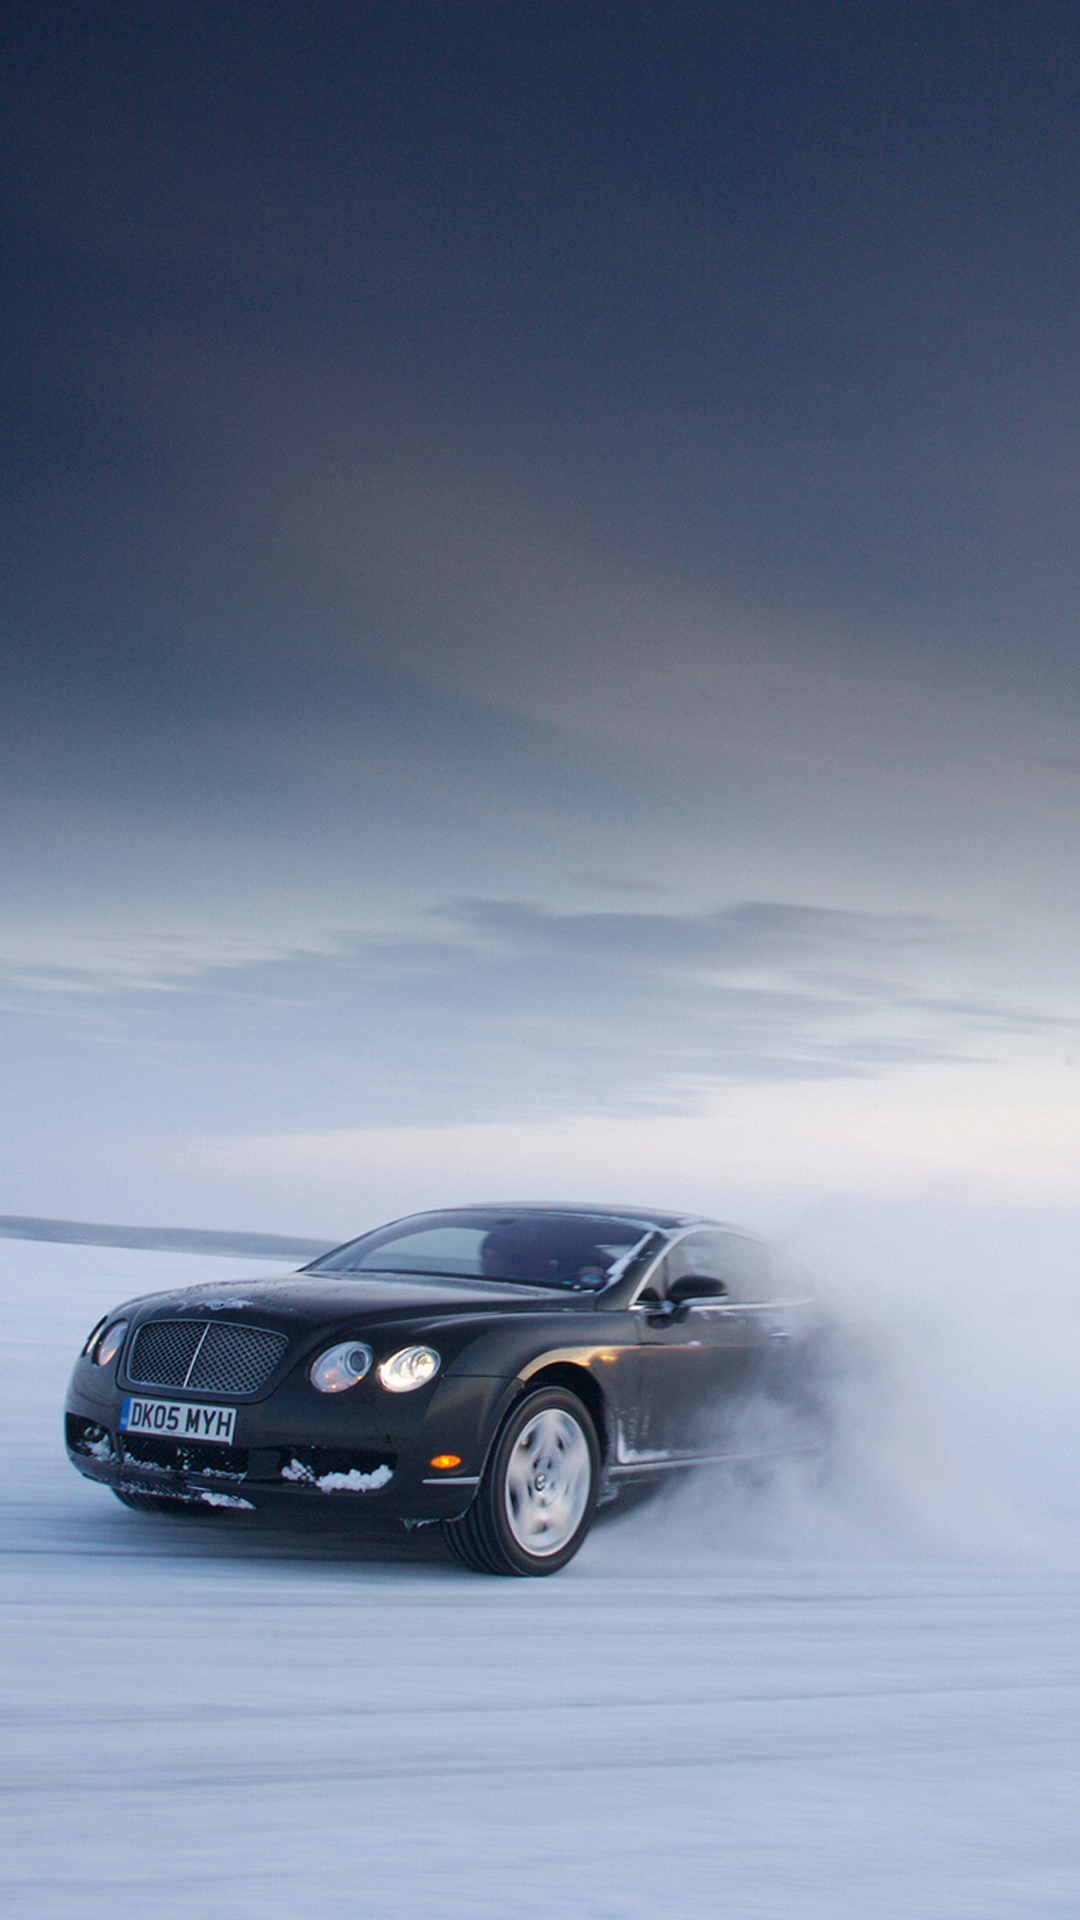 bentley continental gt on snow for samsung galaxy s4